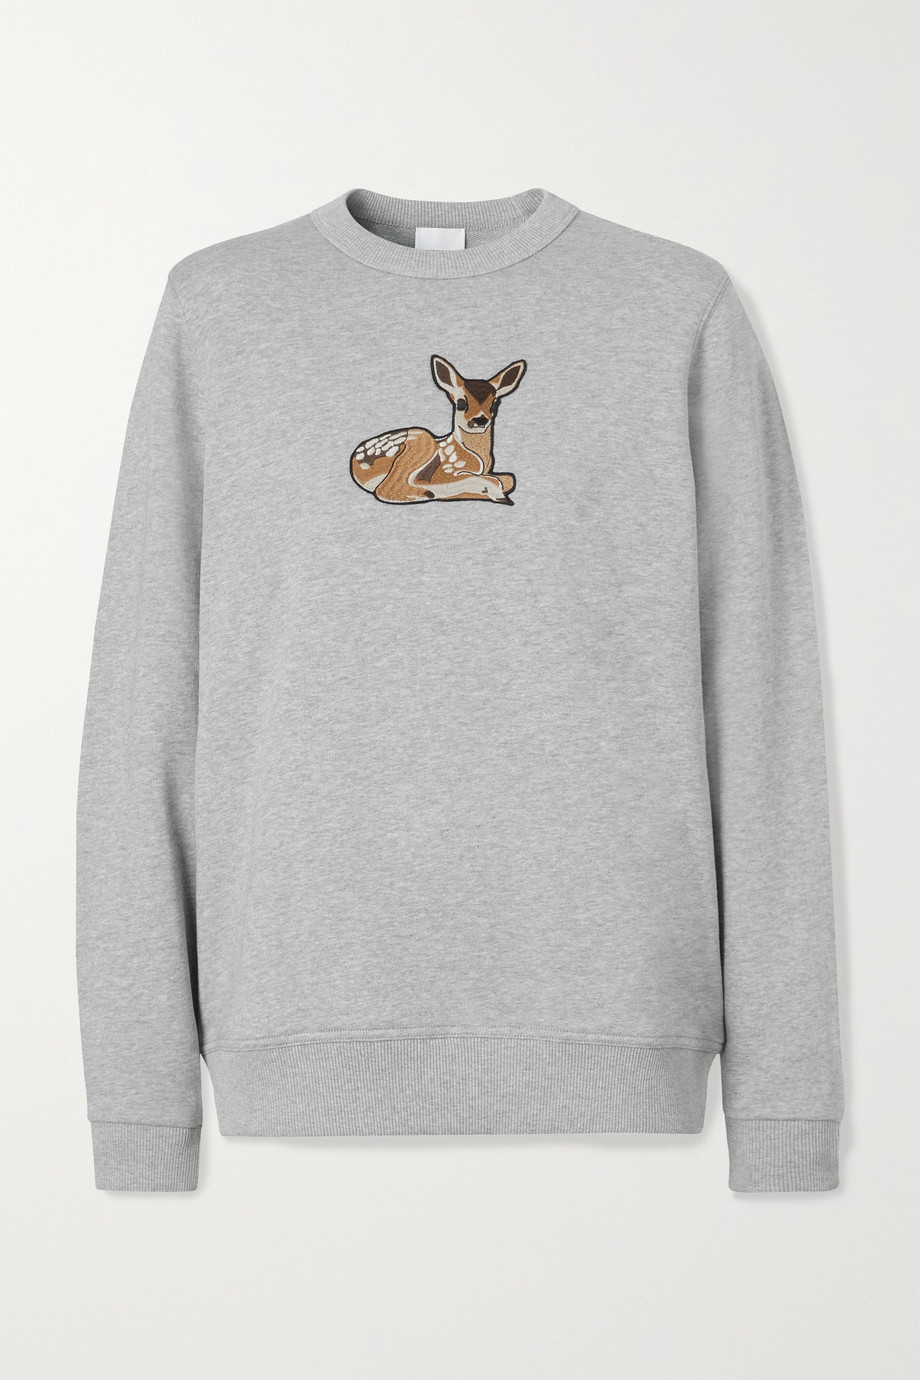 Burberry Appliquéd cotton-jersey sweatshirt